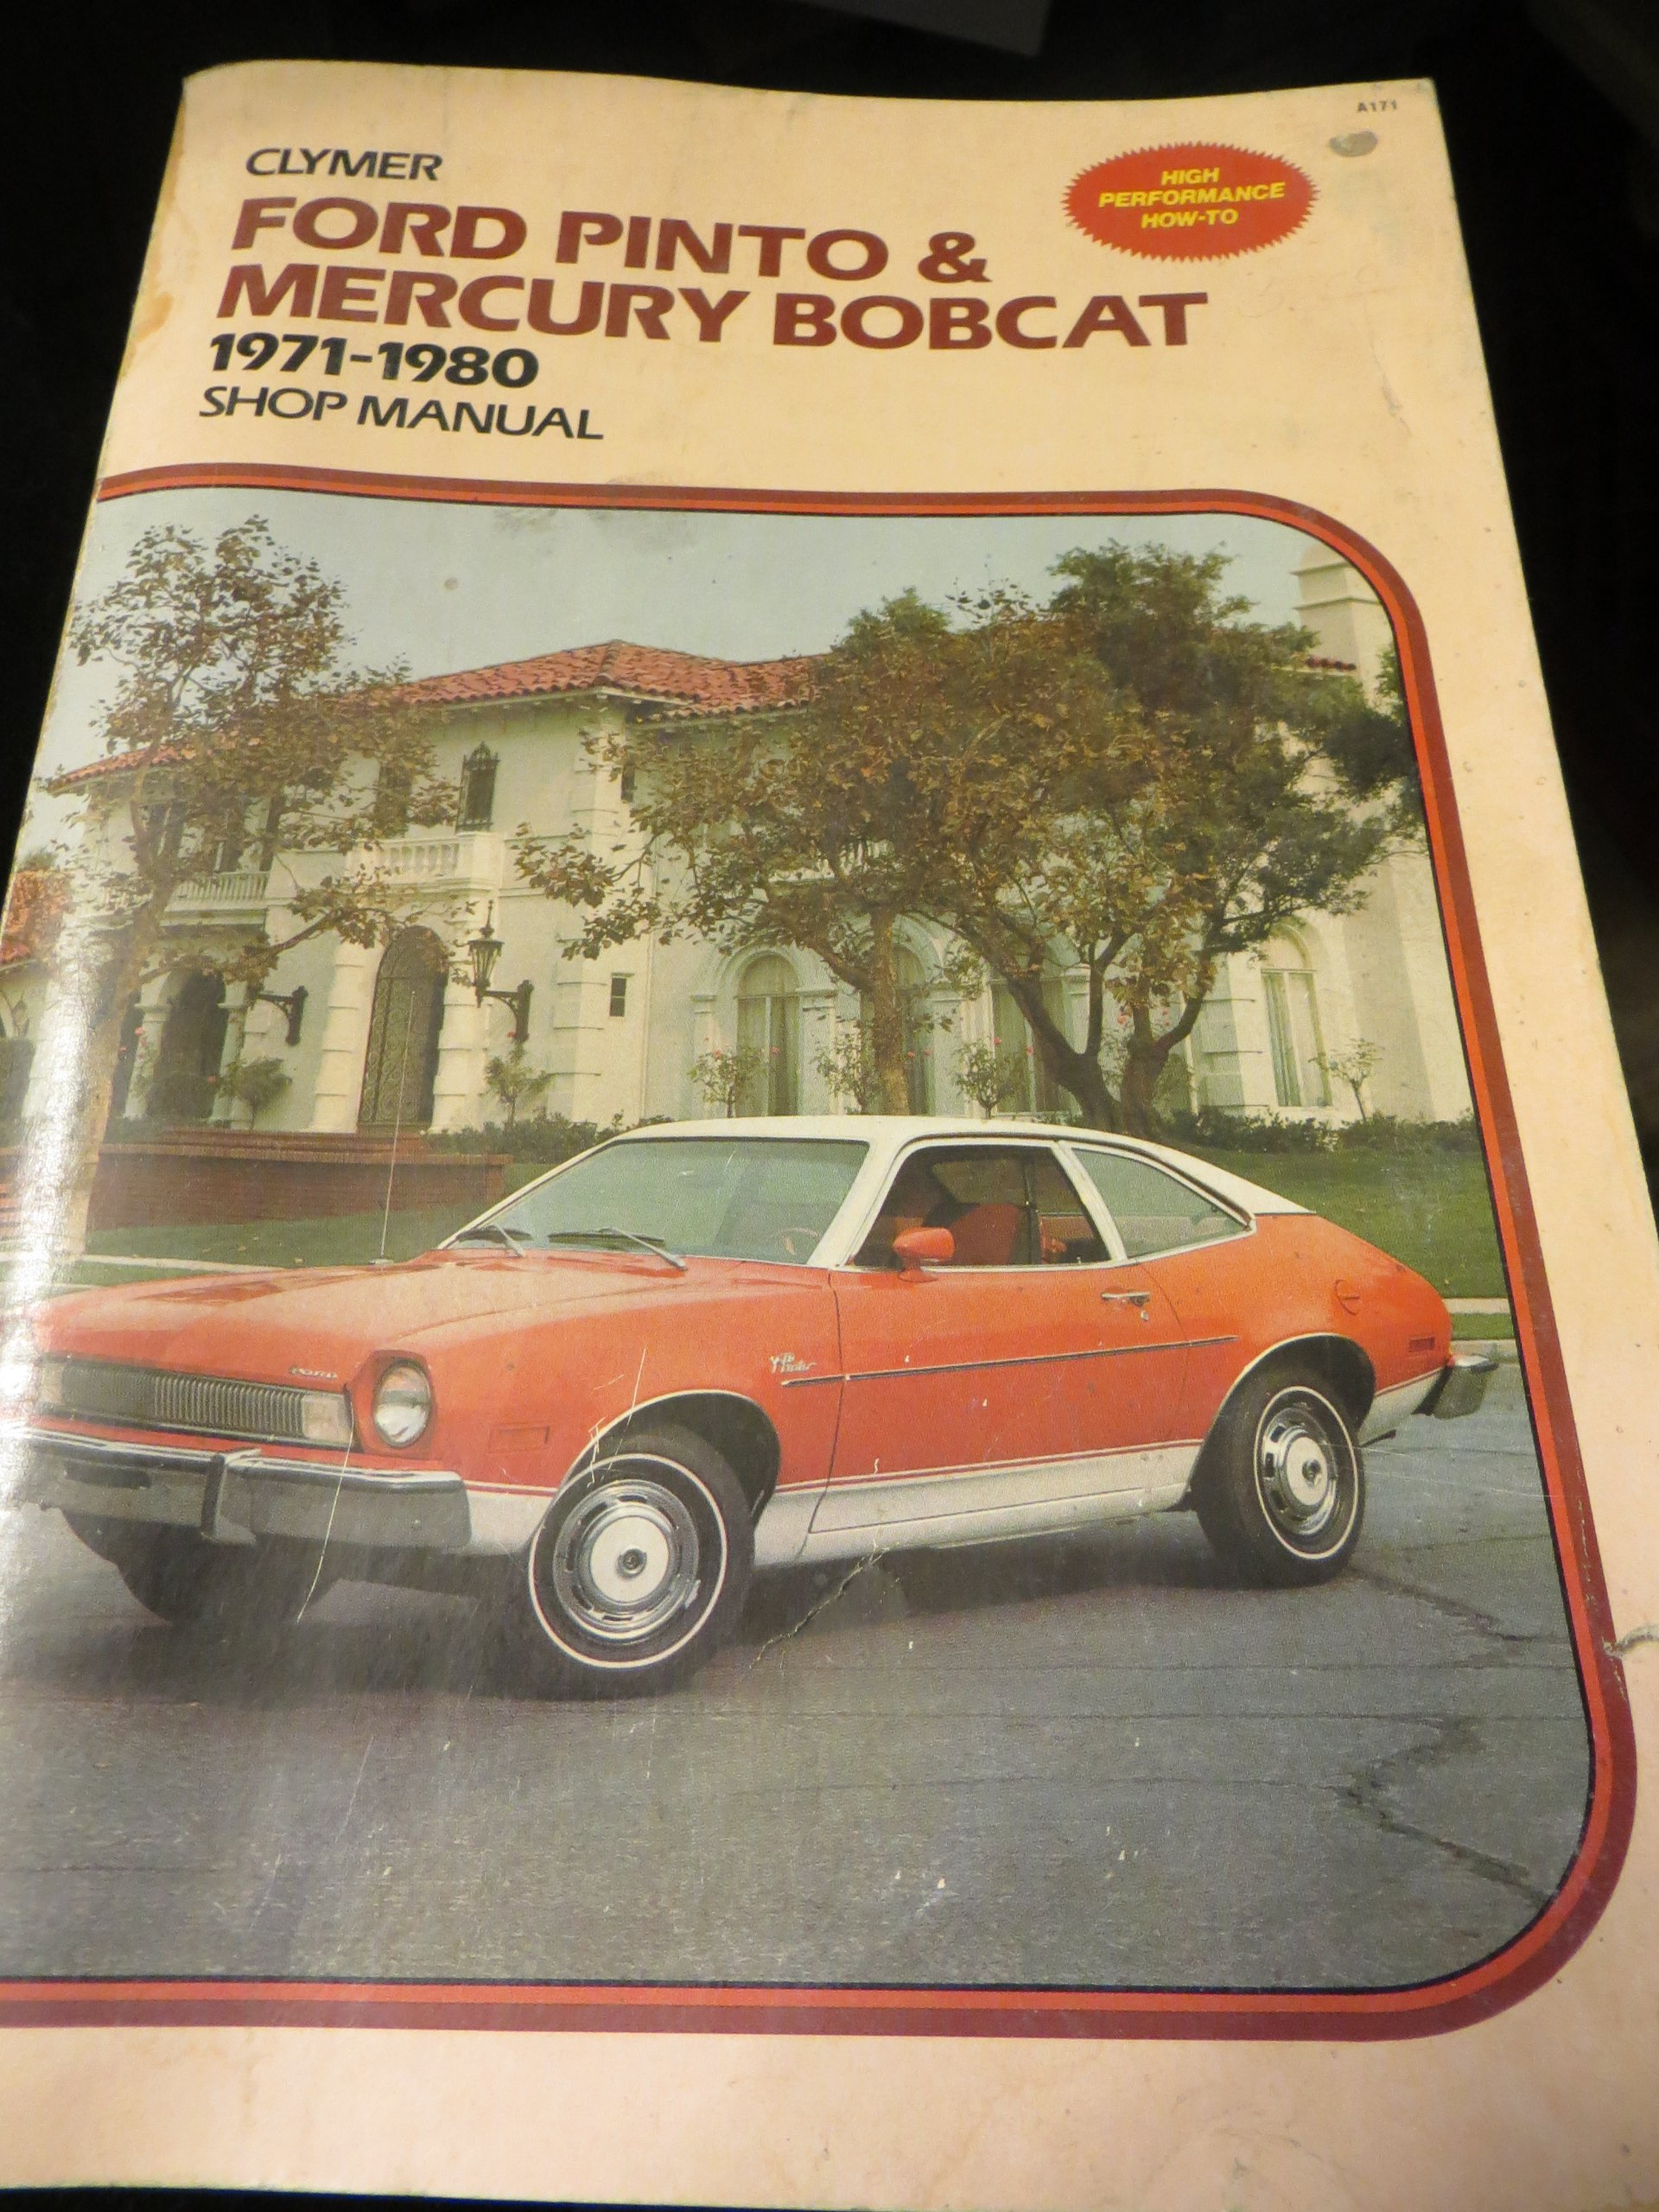 ford pinto & mercury bobcat, 1971 1980 shop manual alan ahlstrand ford electronic ignition wiring diagram ford pinto & mercury bobcat, 1971 1980 shop manual alan ahlstrand 9780892872114 amazon com books